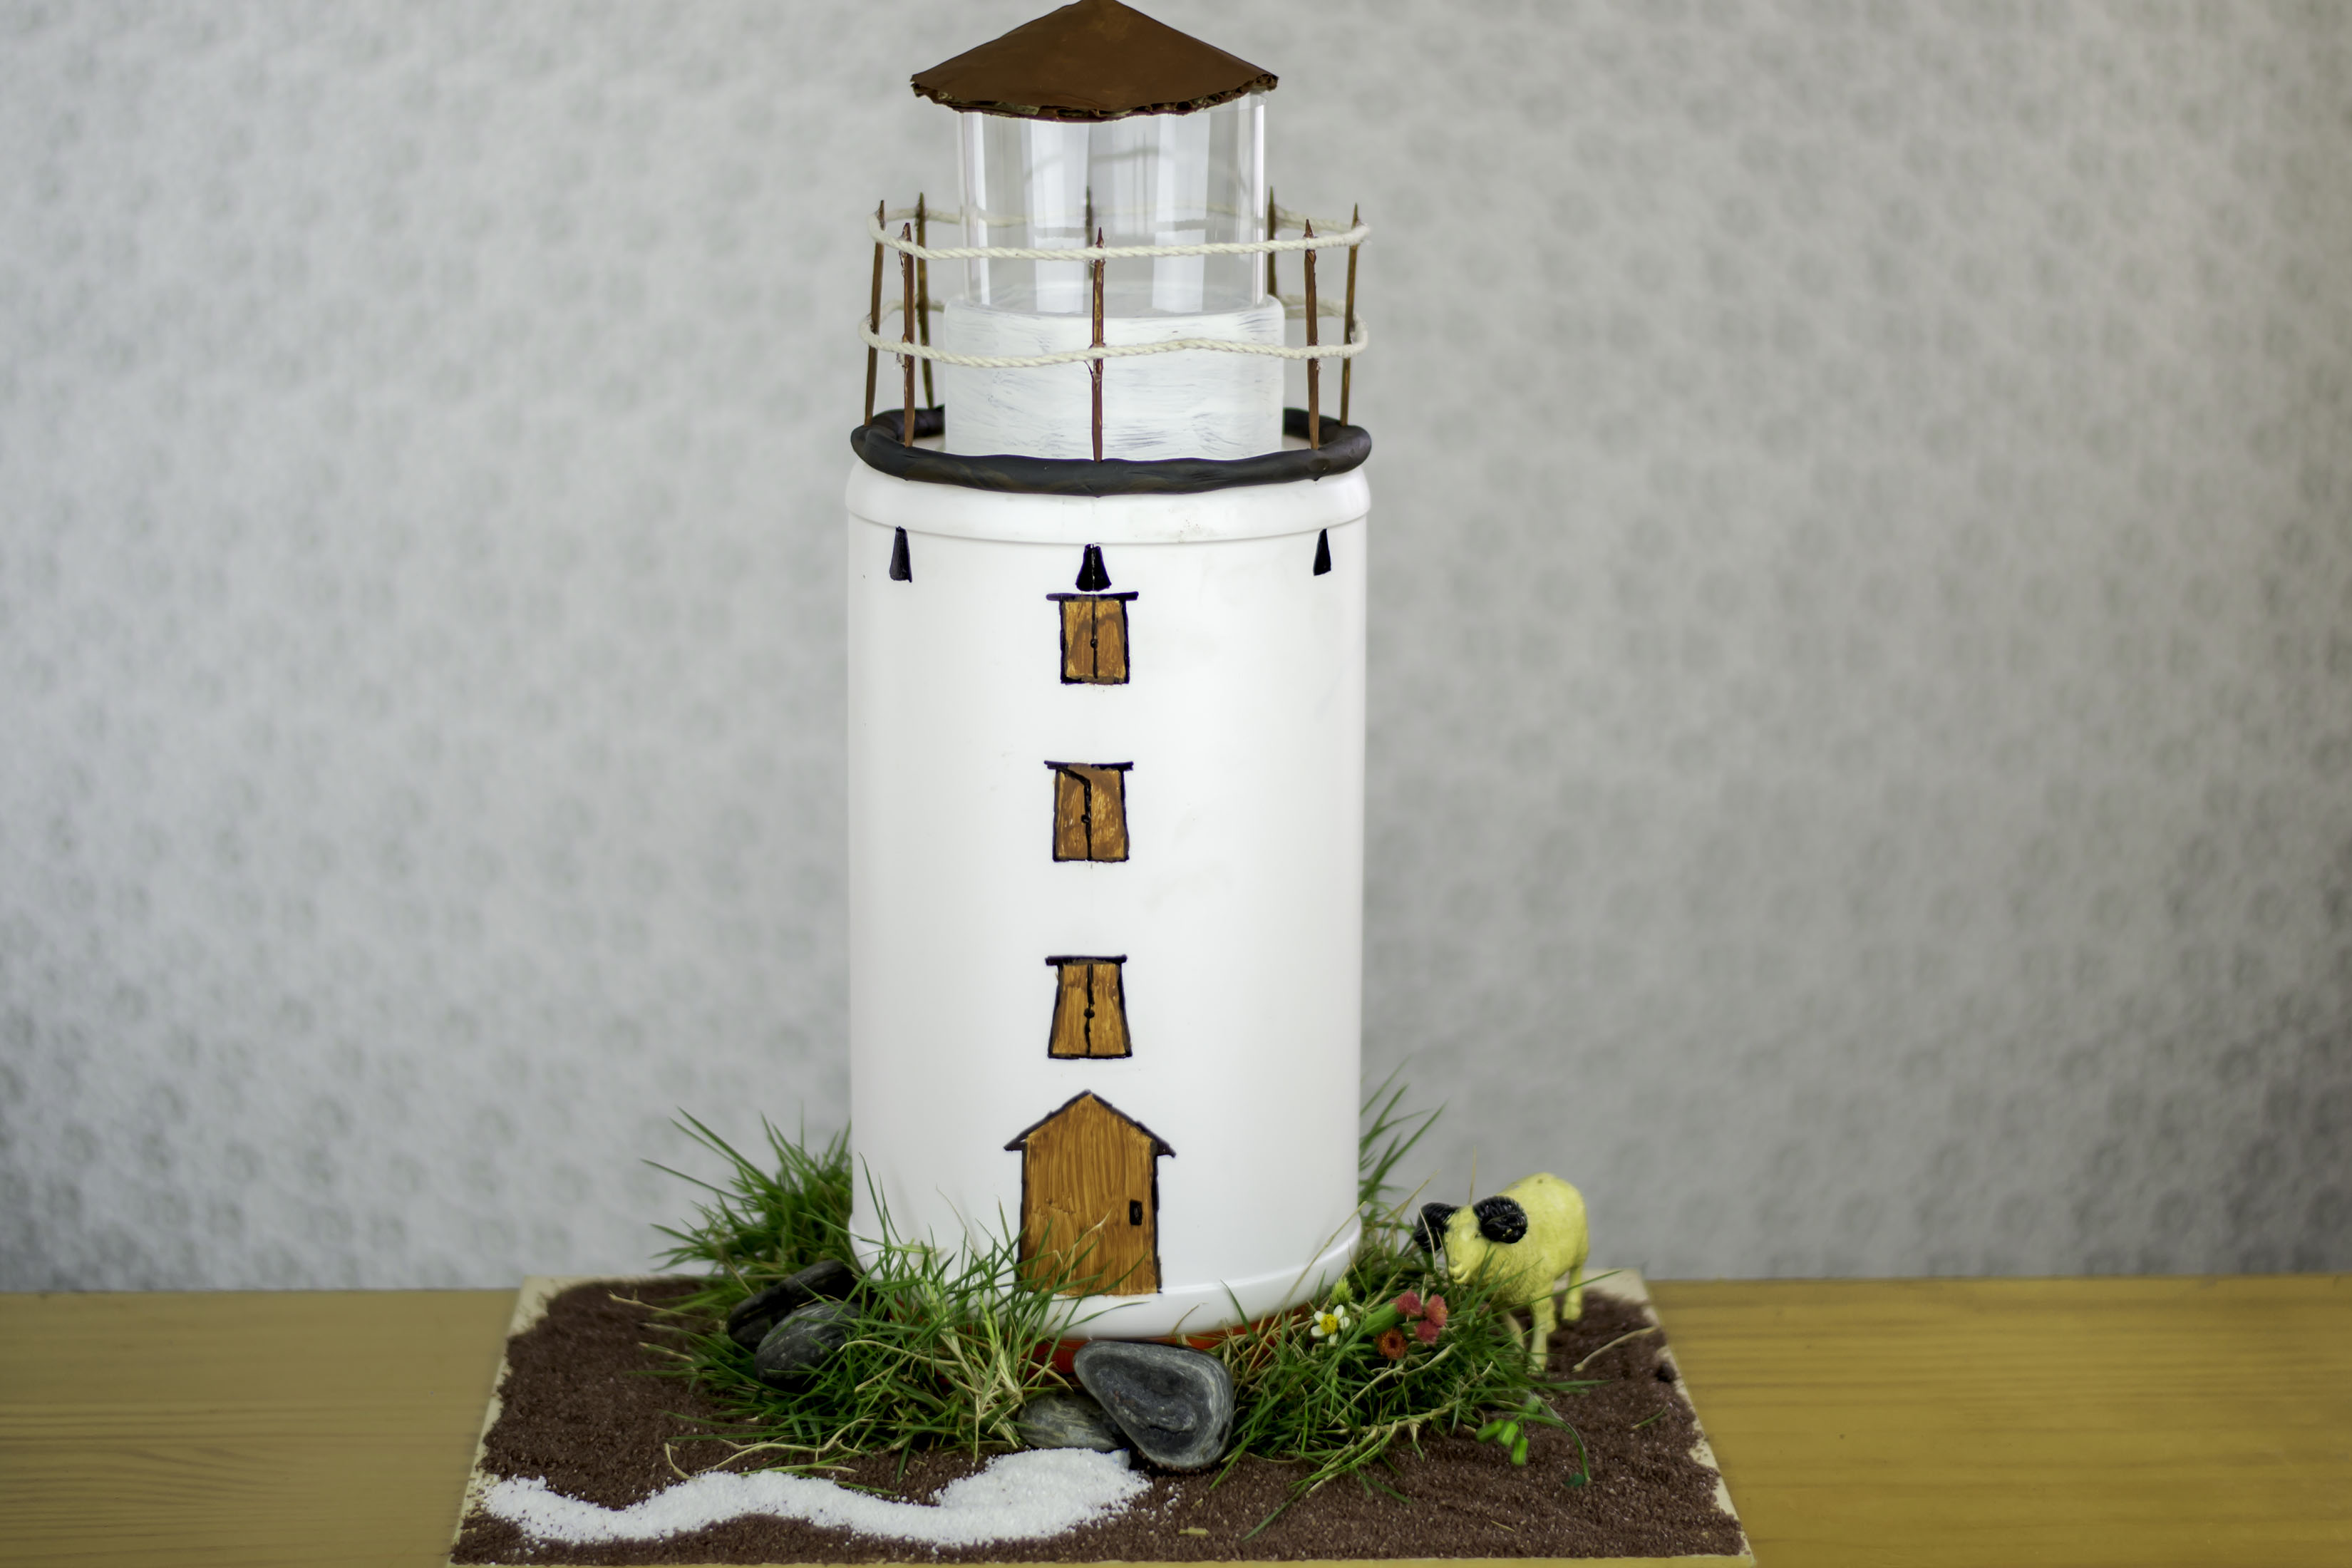 How to Build a Model Lighthouse for a School Project | Synonym